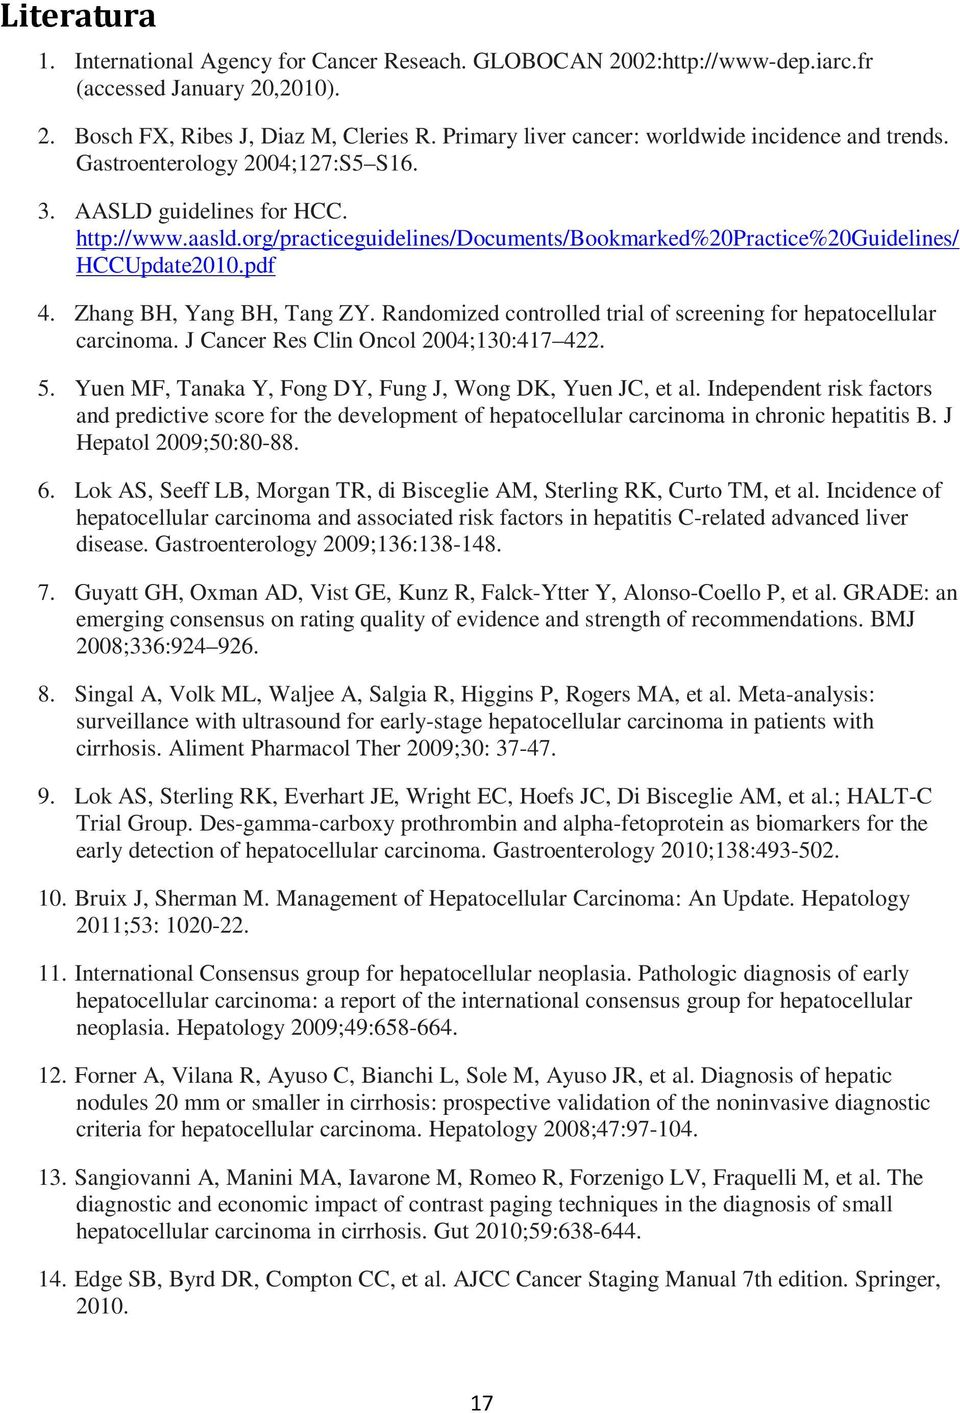 org/practiceguidelines/documents/bookmarked%20practice%20guidelines/ HCCUpdate2010.pdf 4. Zhang BH, Yang BH, Tang ZY. Randomized controlled trial of screening for hepatocellular carcinoma.